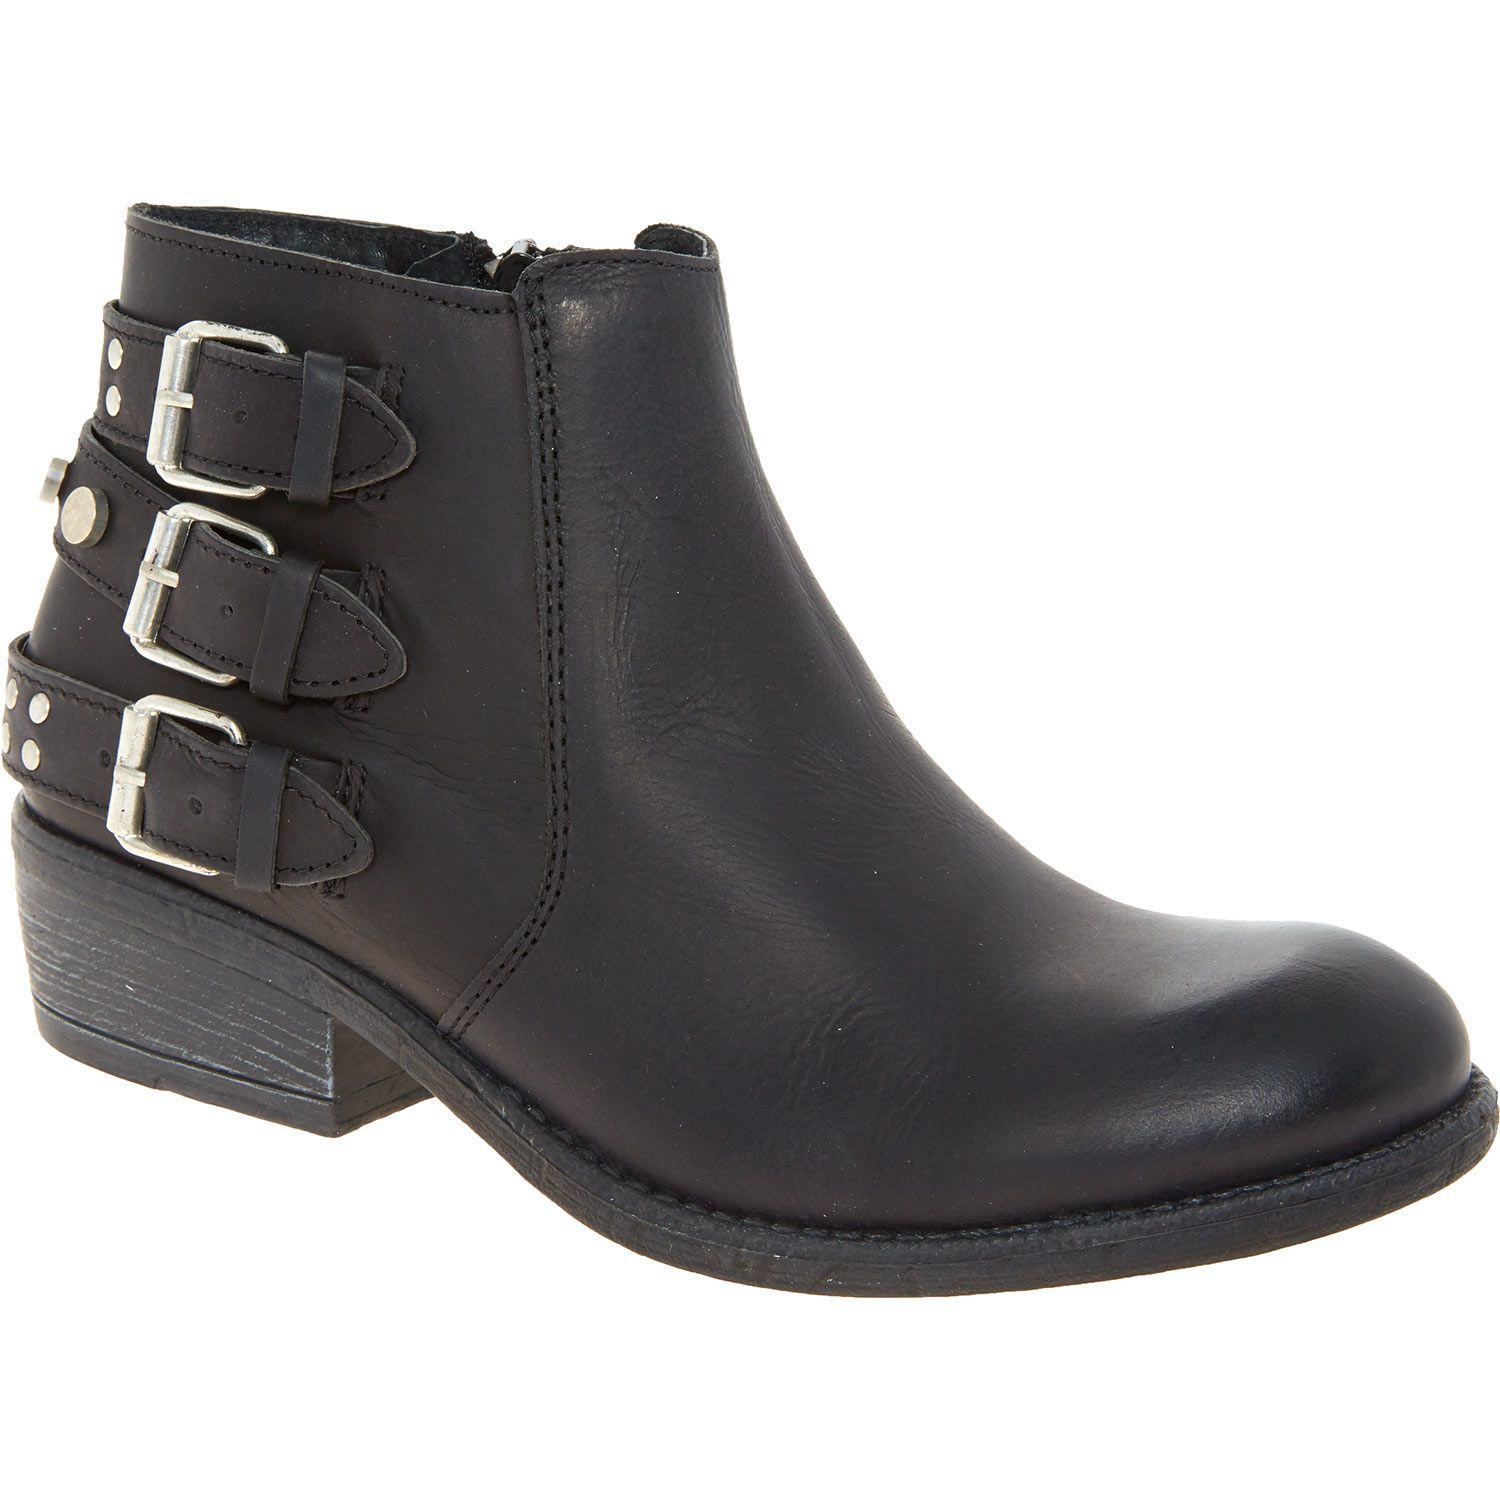 """""""Amore """" Black Leather Buckled Ankle Boots TK Maxx"""